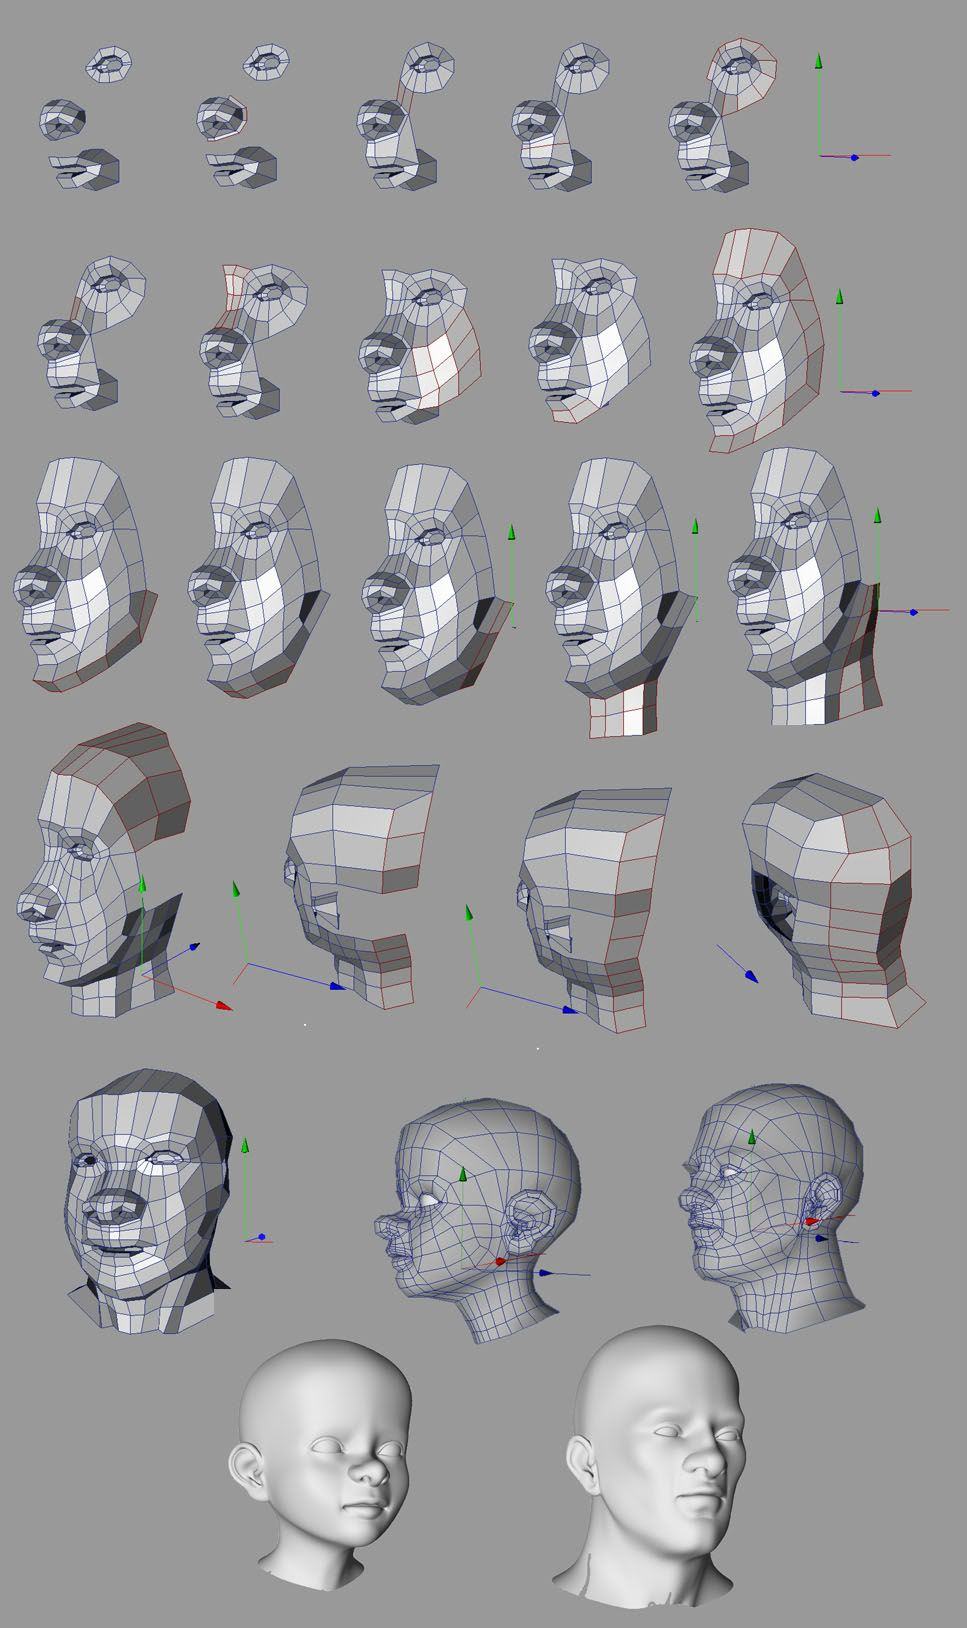 Picked up by CGchips. 2D,3DCG tutorials and 3Dprinter news